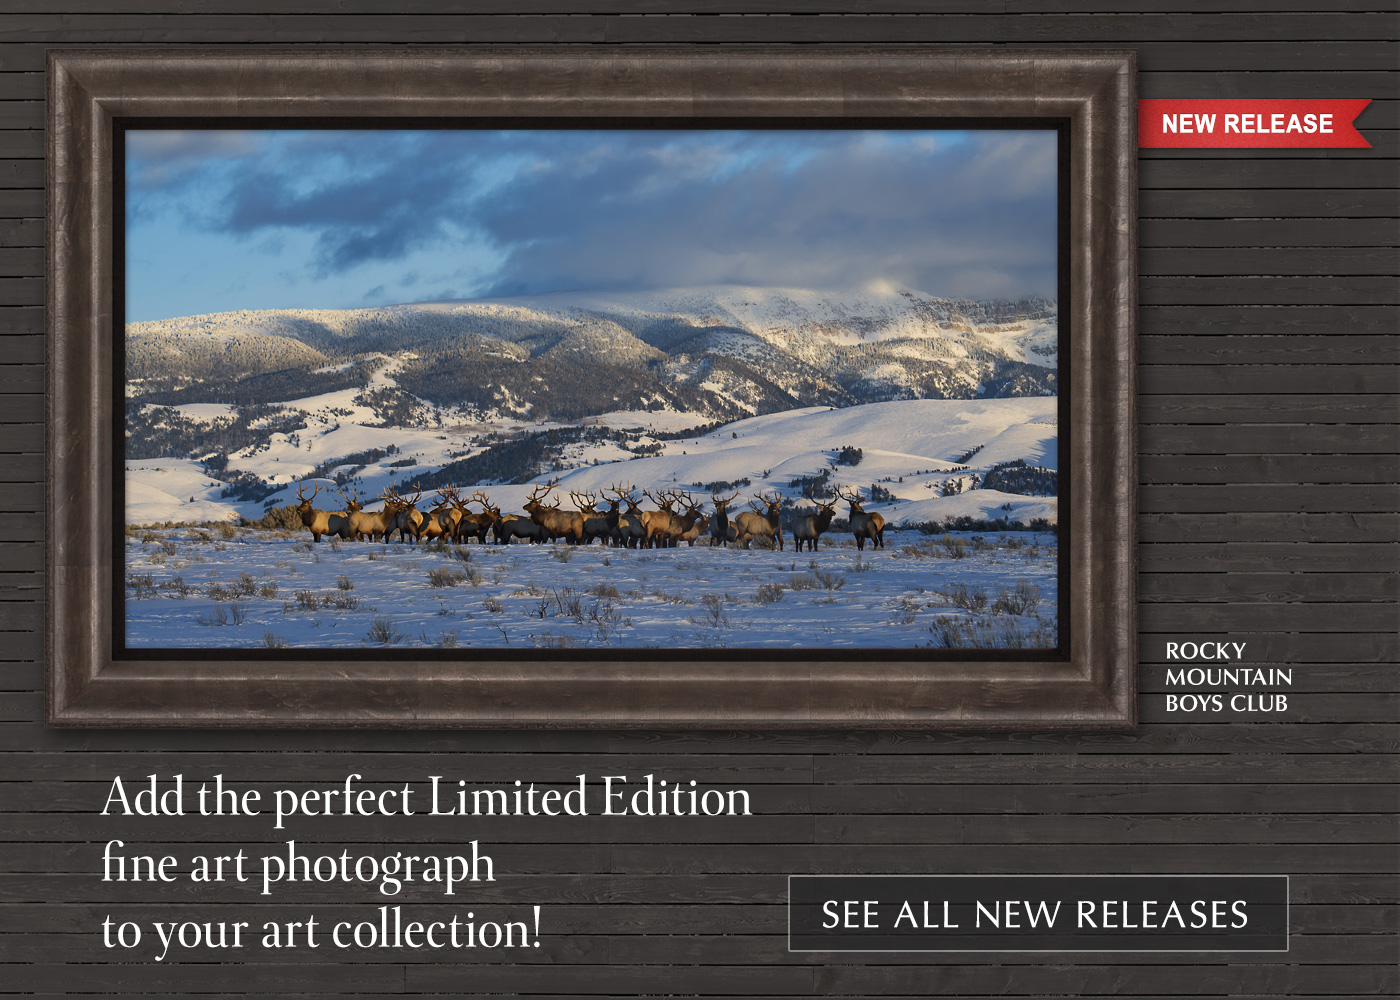 Add some new art to your home or office. Enjoy 25% off fine art photography!